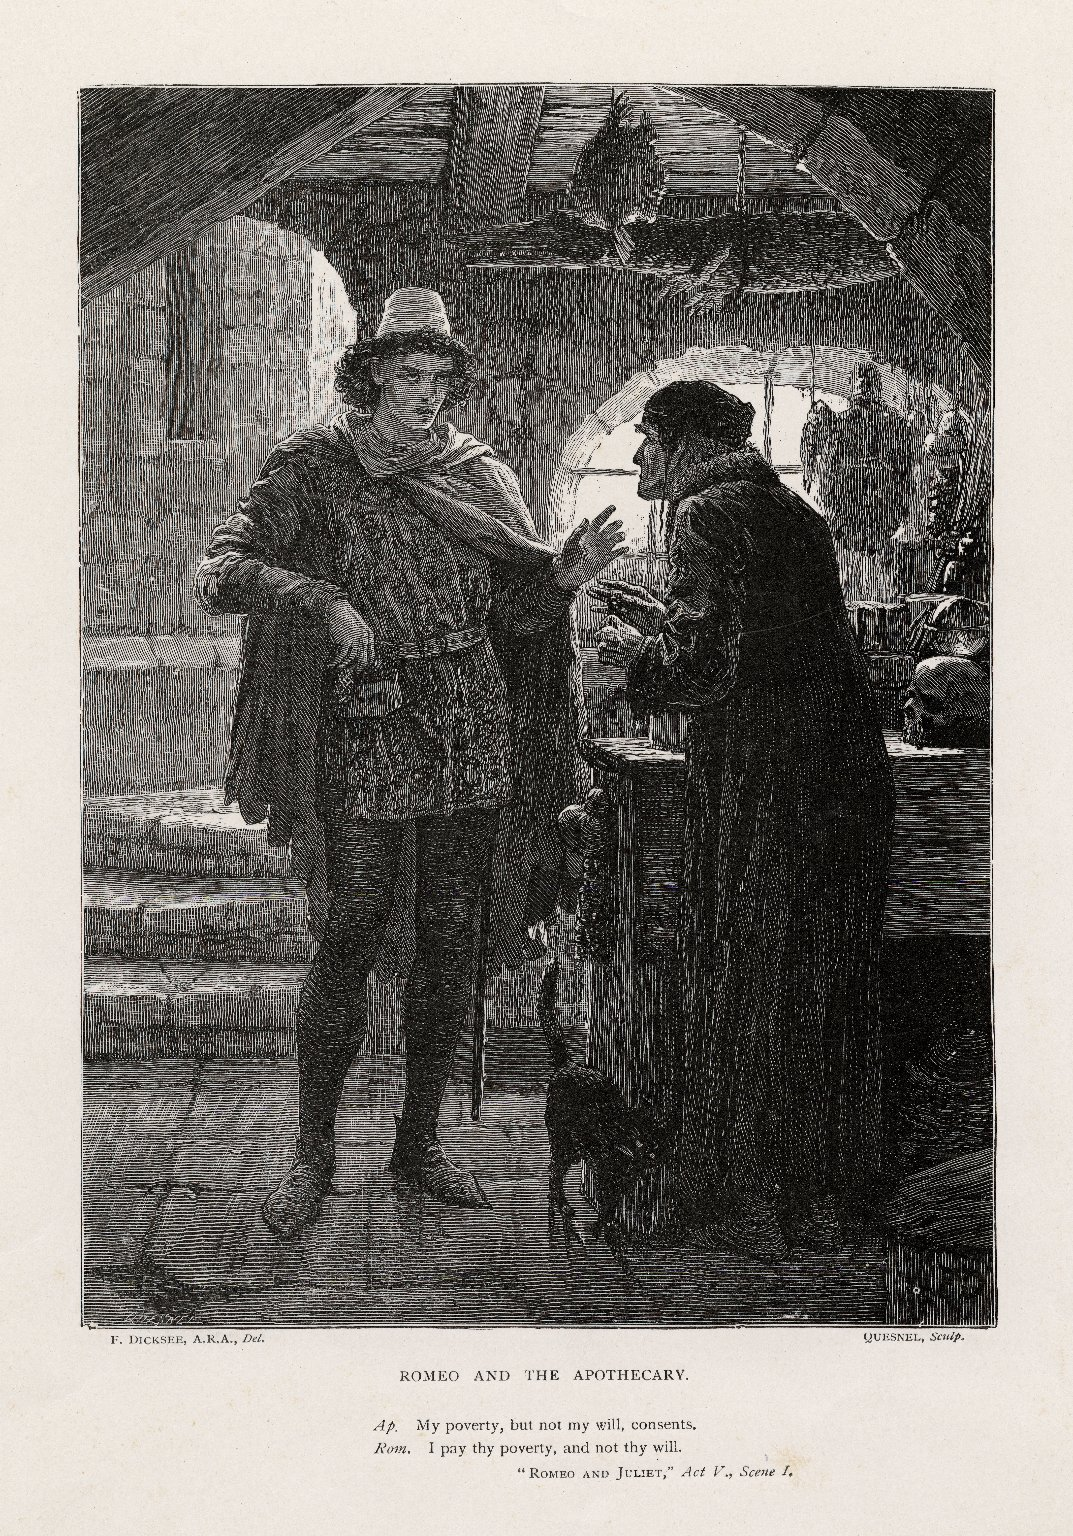 Romeo and the Apothecary, Romeo and Juliet, act V, scene I [graphic] / F. Dicksee, A.R.A., del. ; Quesnel, sculp.